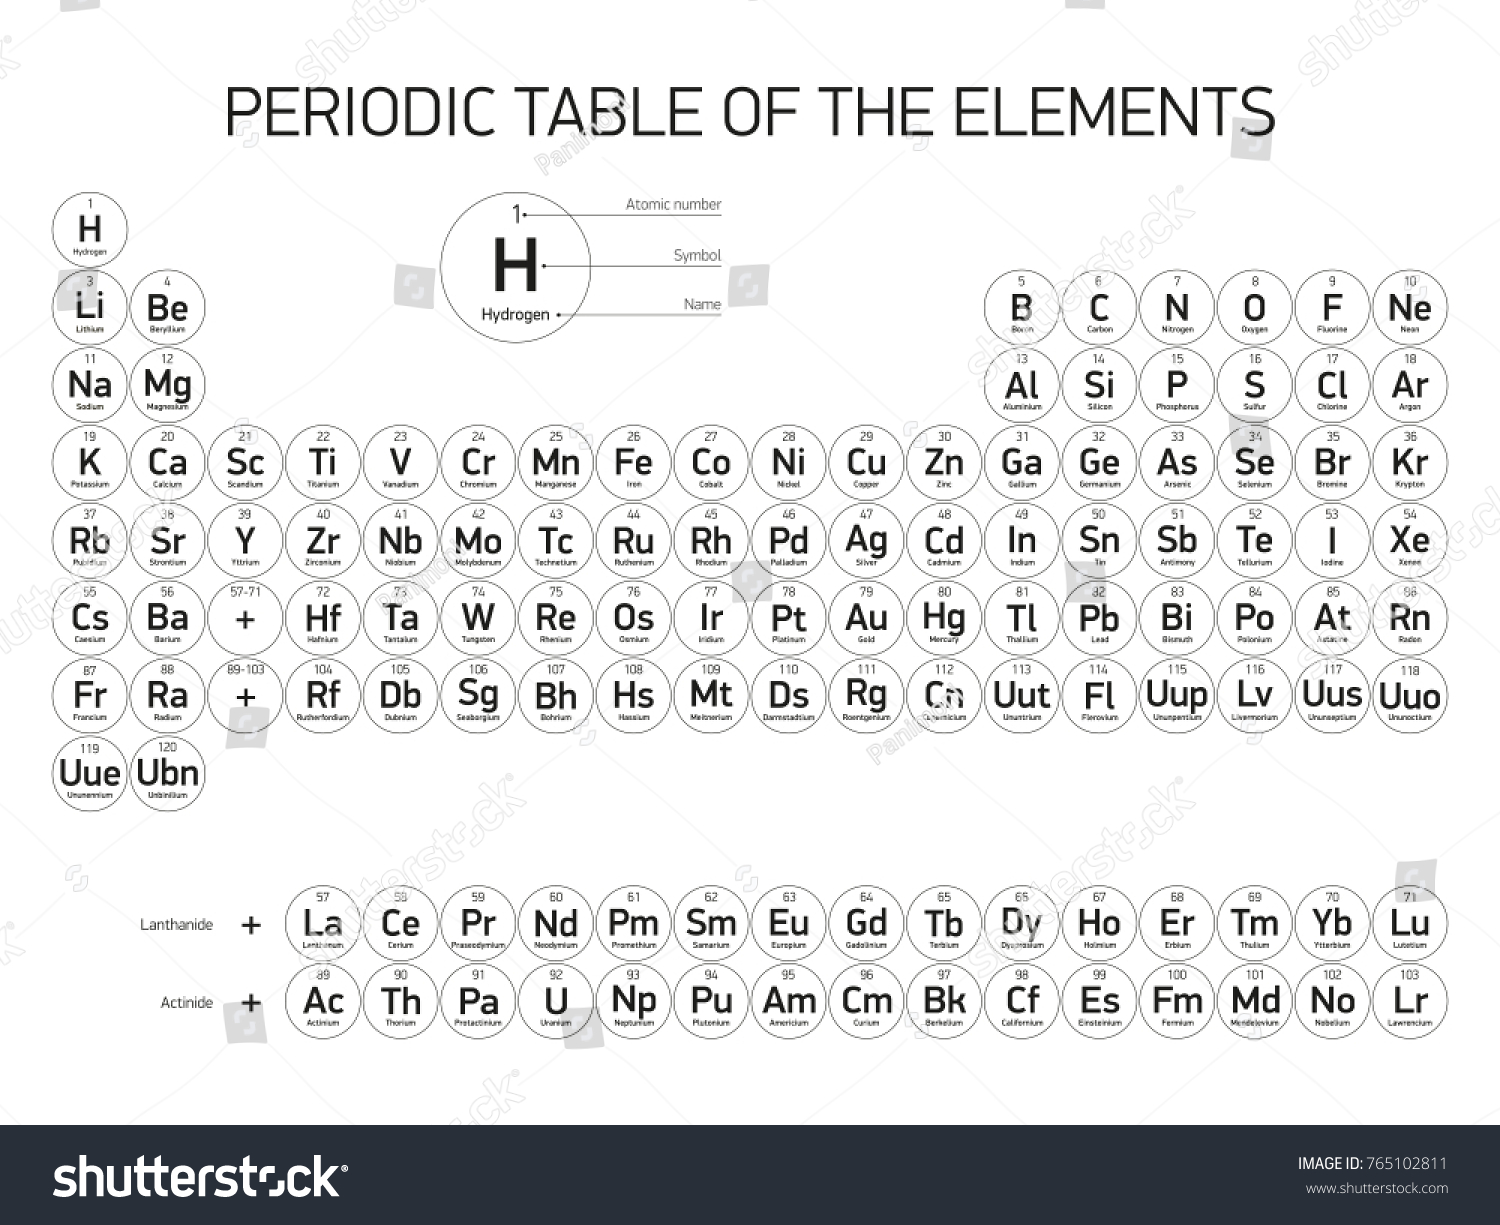 Periodic table elements vector design extended stock vector periodic table of the elements vector design extended version new elements black gamestrikefo Image collections